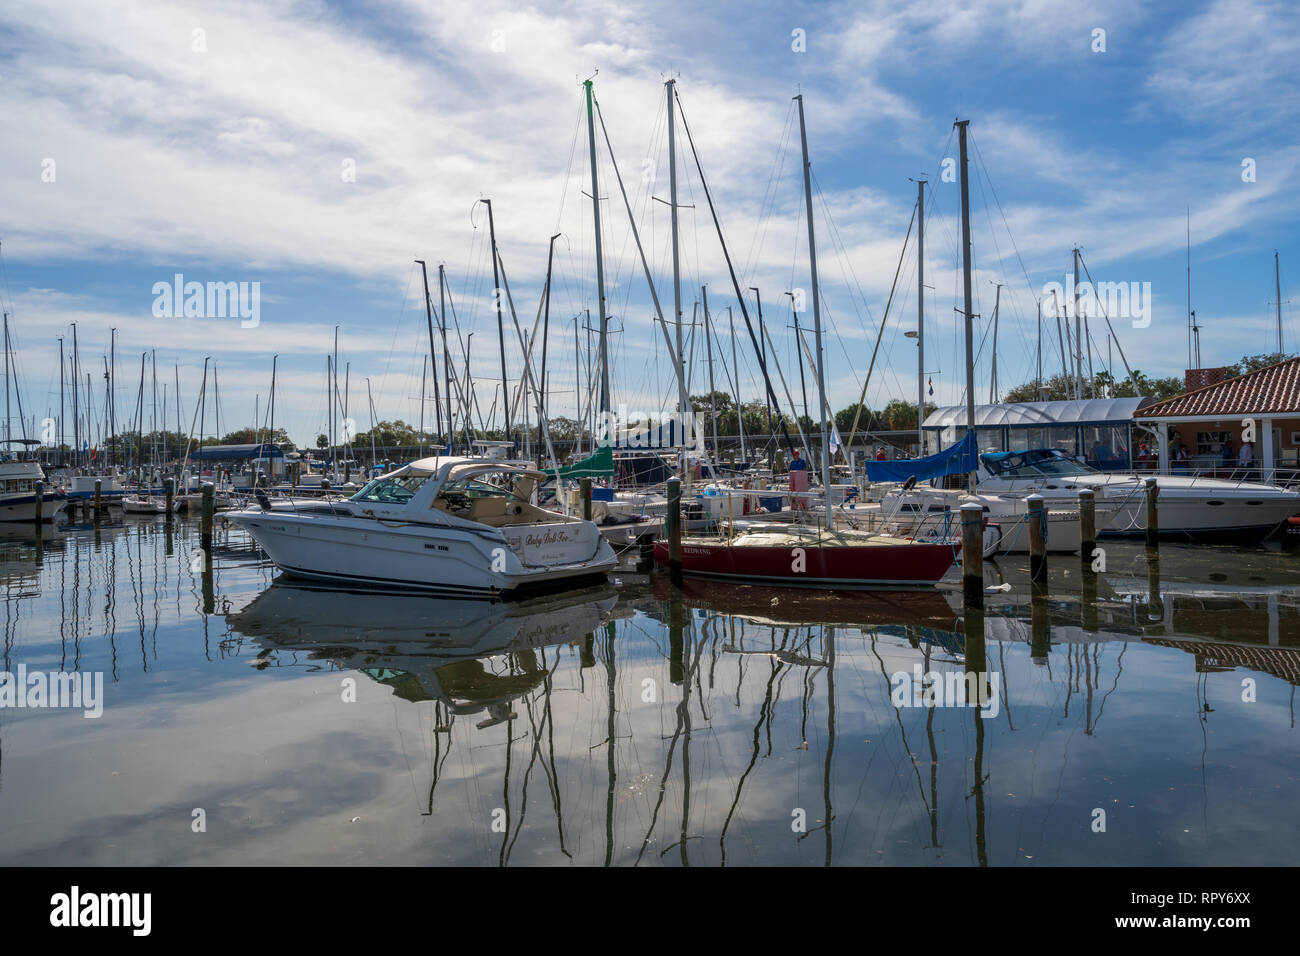 St Petersburg, FL, USA --February 15, 2019.  A marina with parked boats  in St Petersburg on a beautiful February morning. - Stock Image